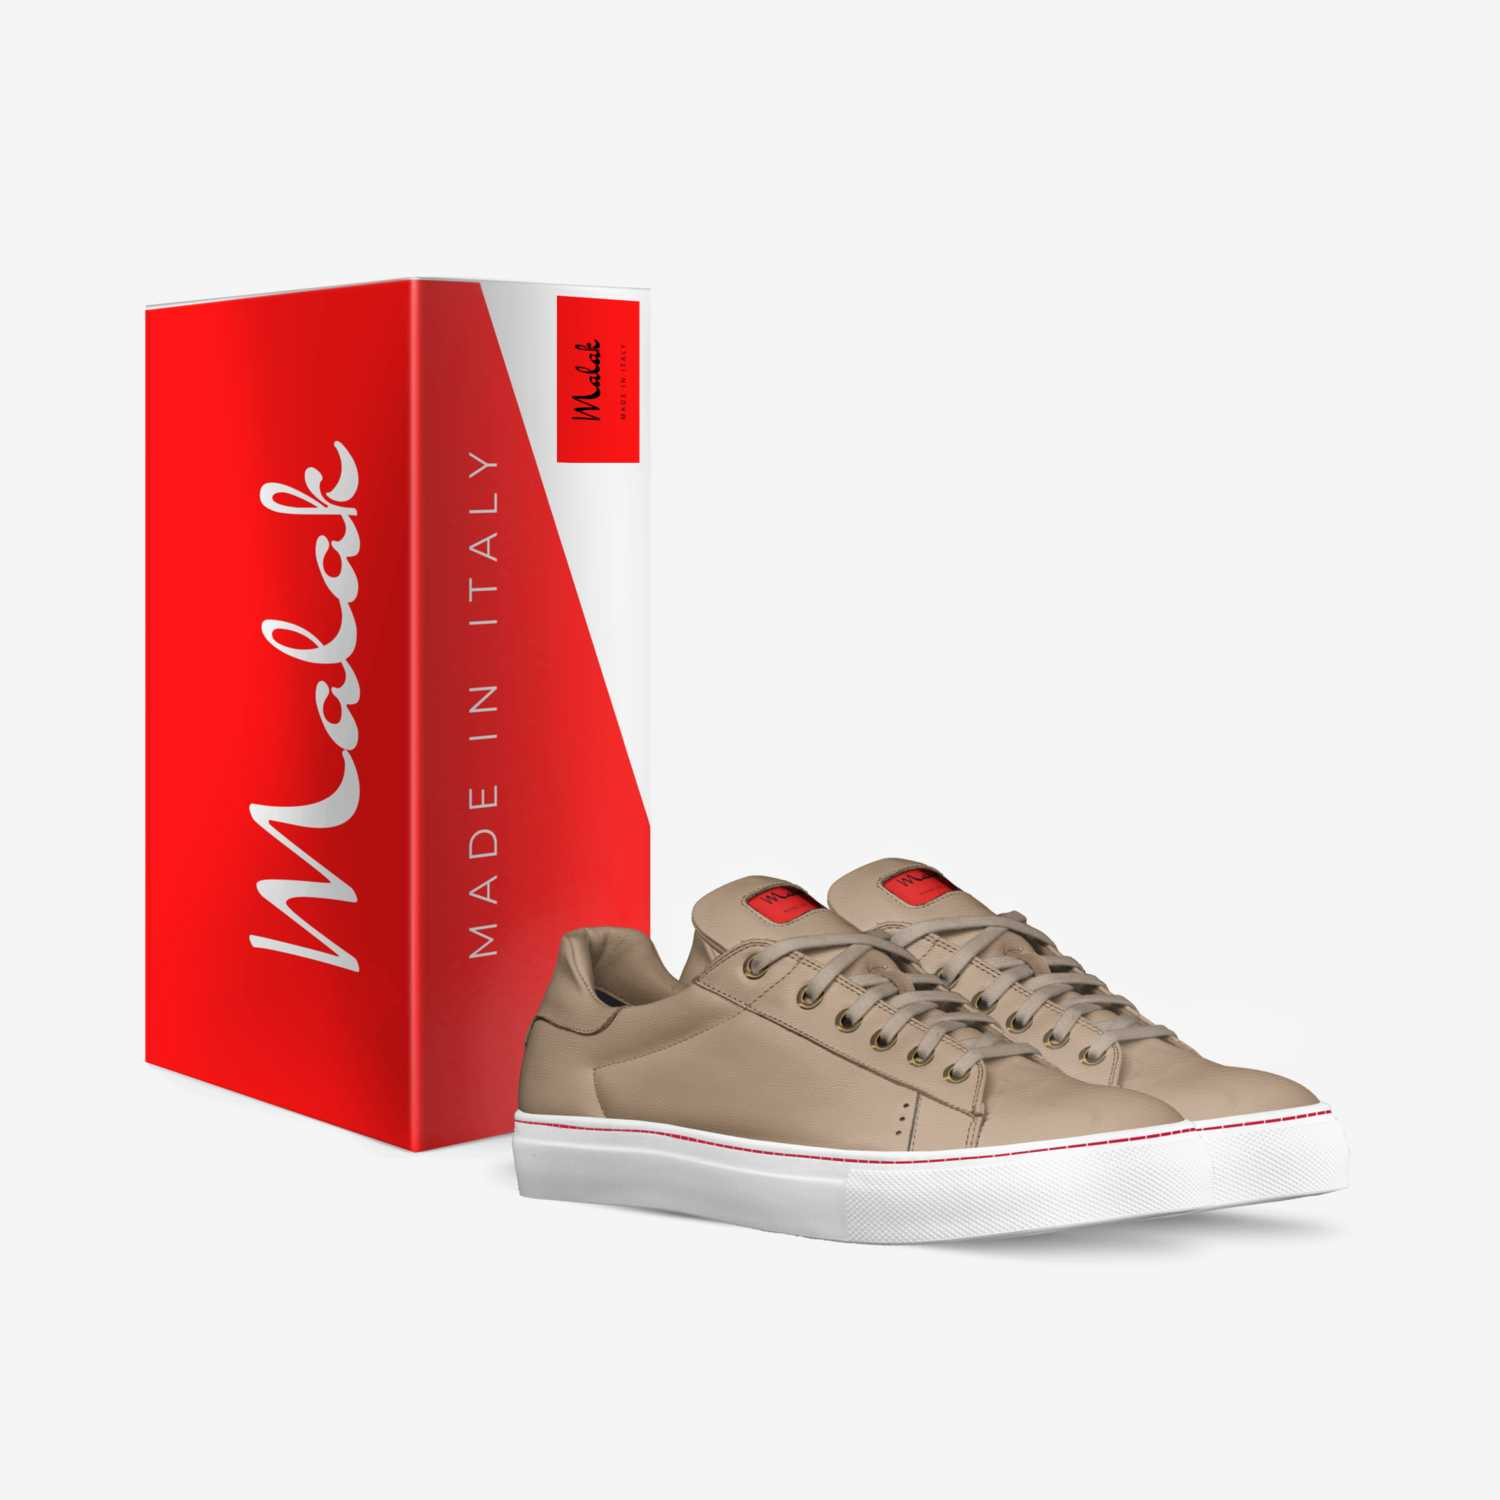 MALAK custom made in Italy shoes by Angel Penn | Box view